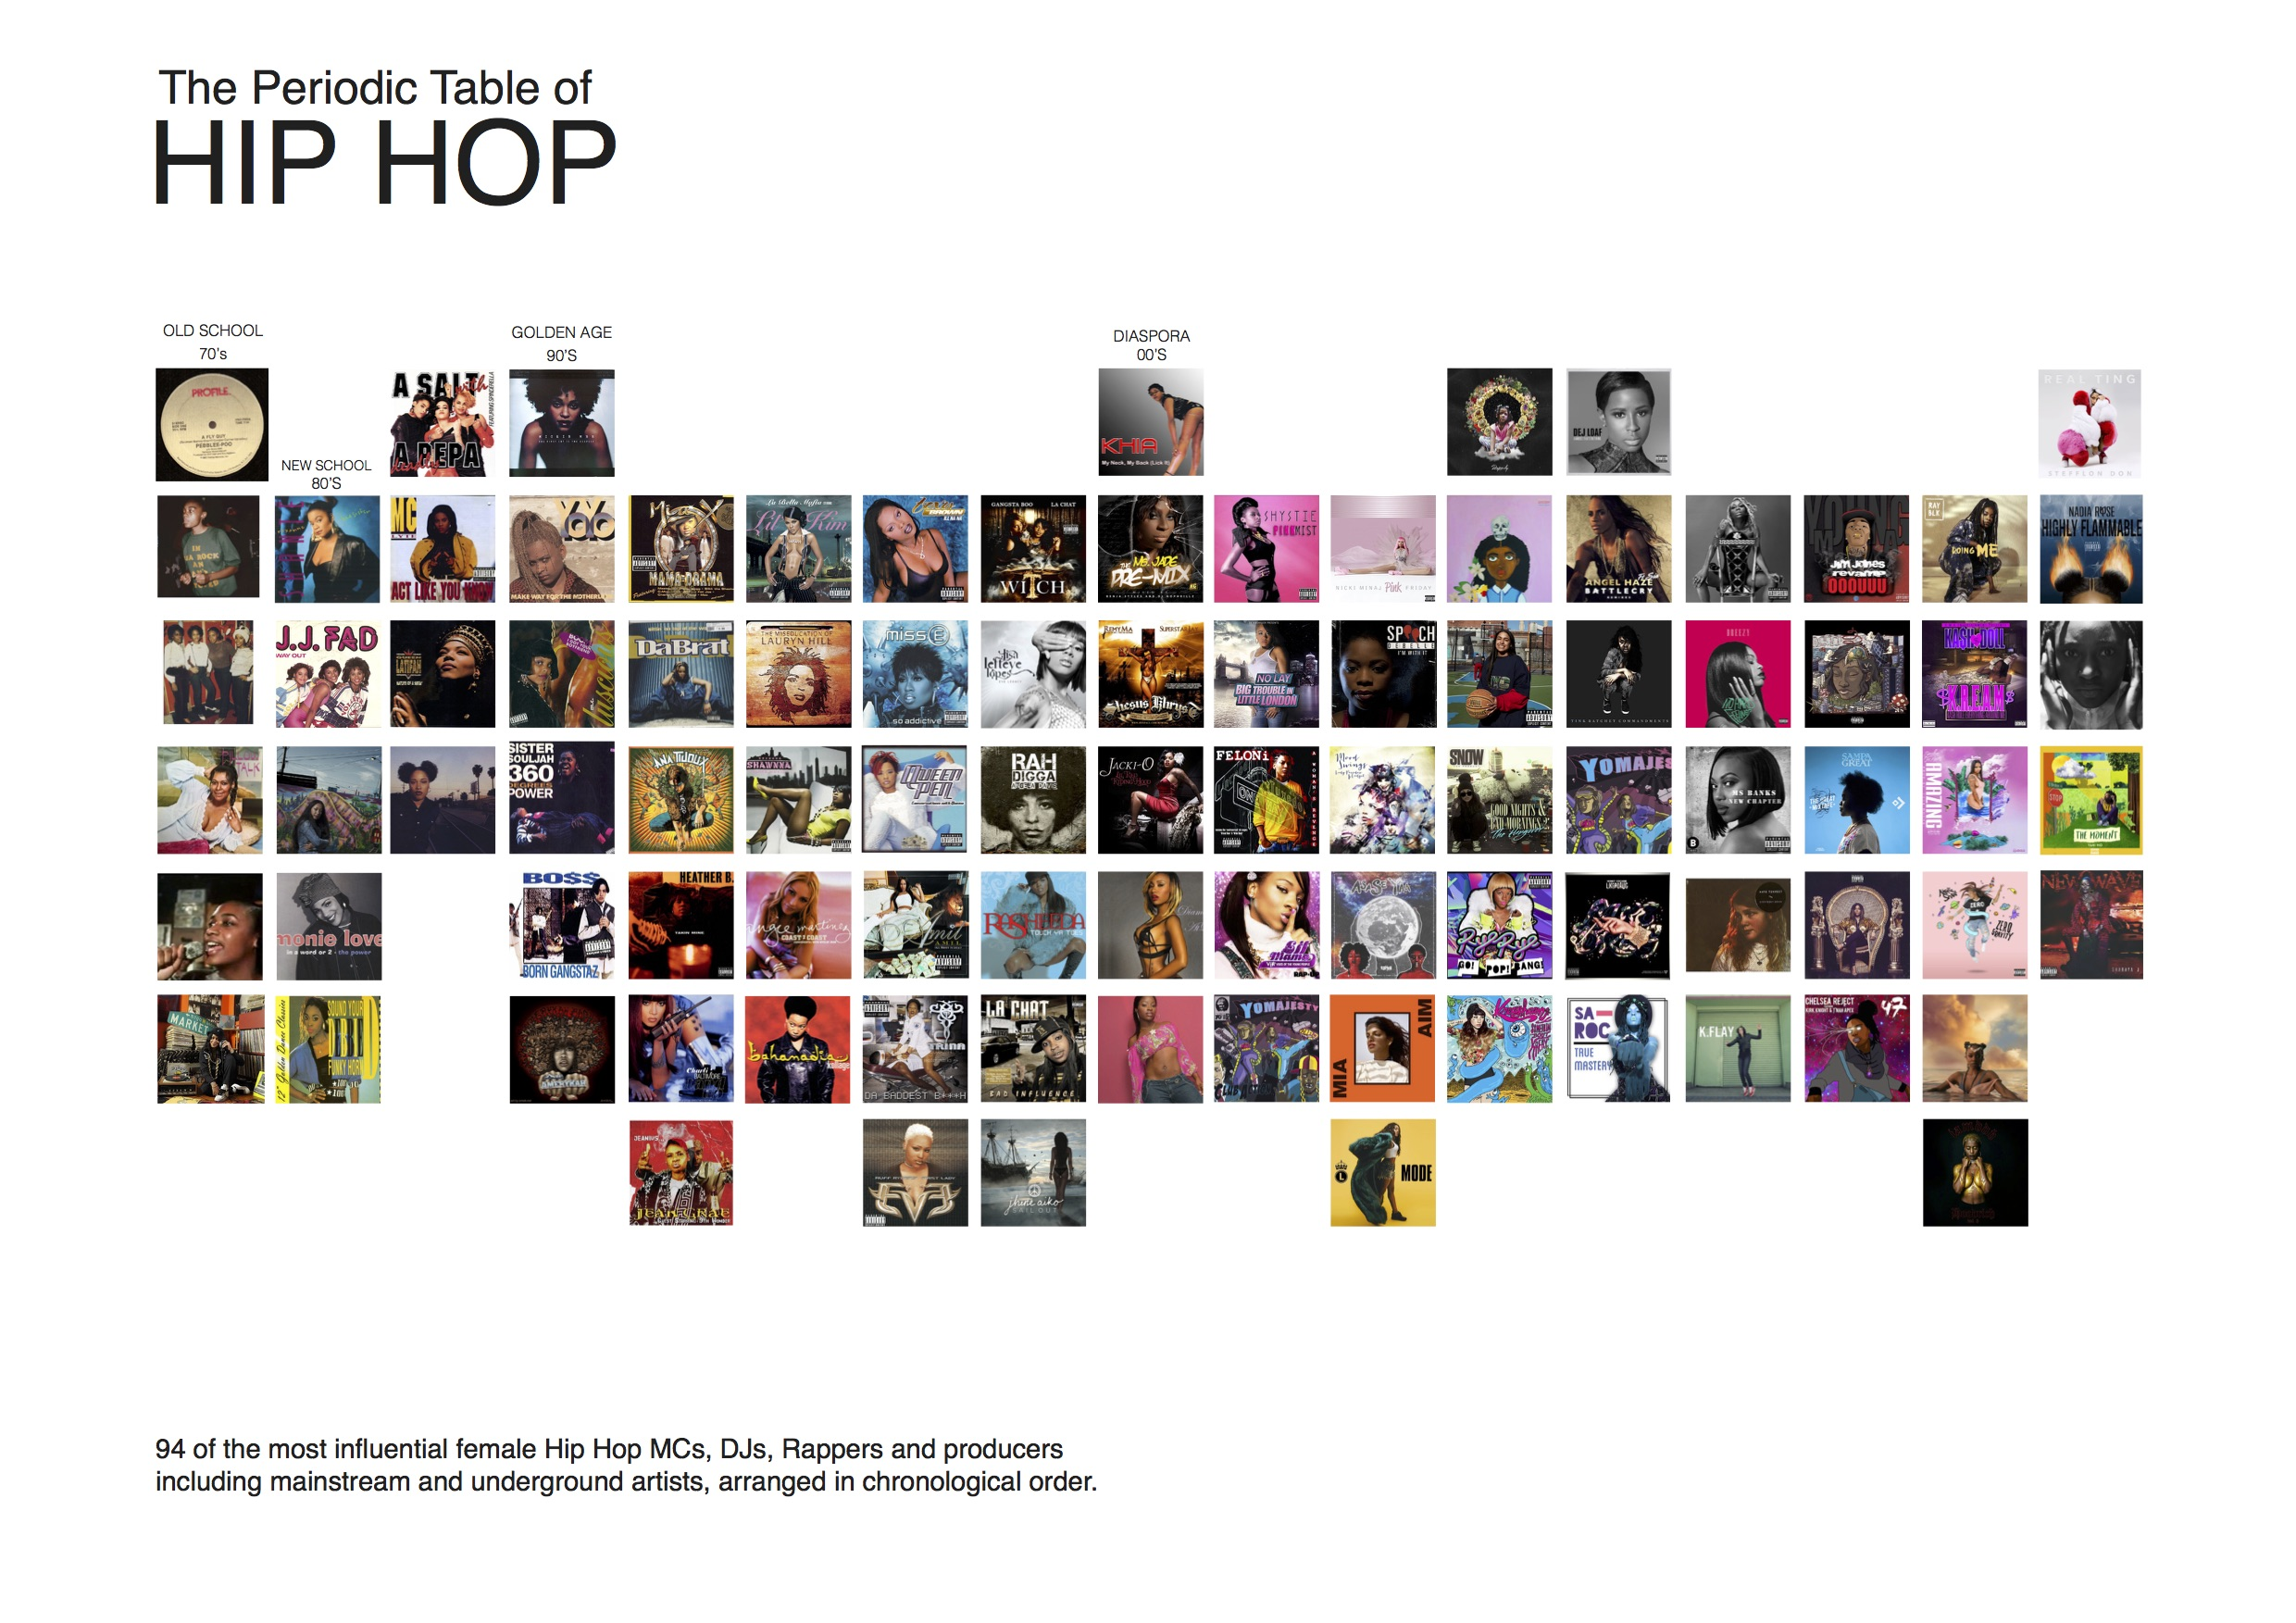 The Representation Of Females In Hip Hop And Rap